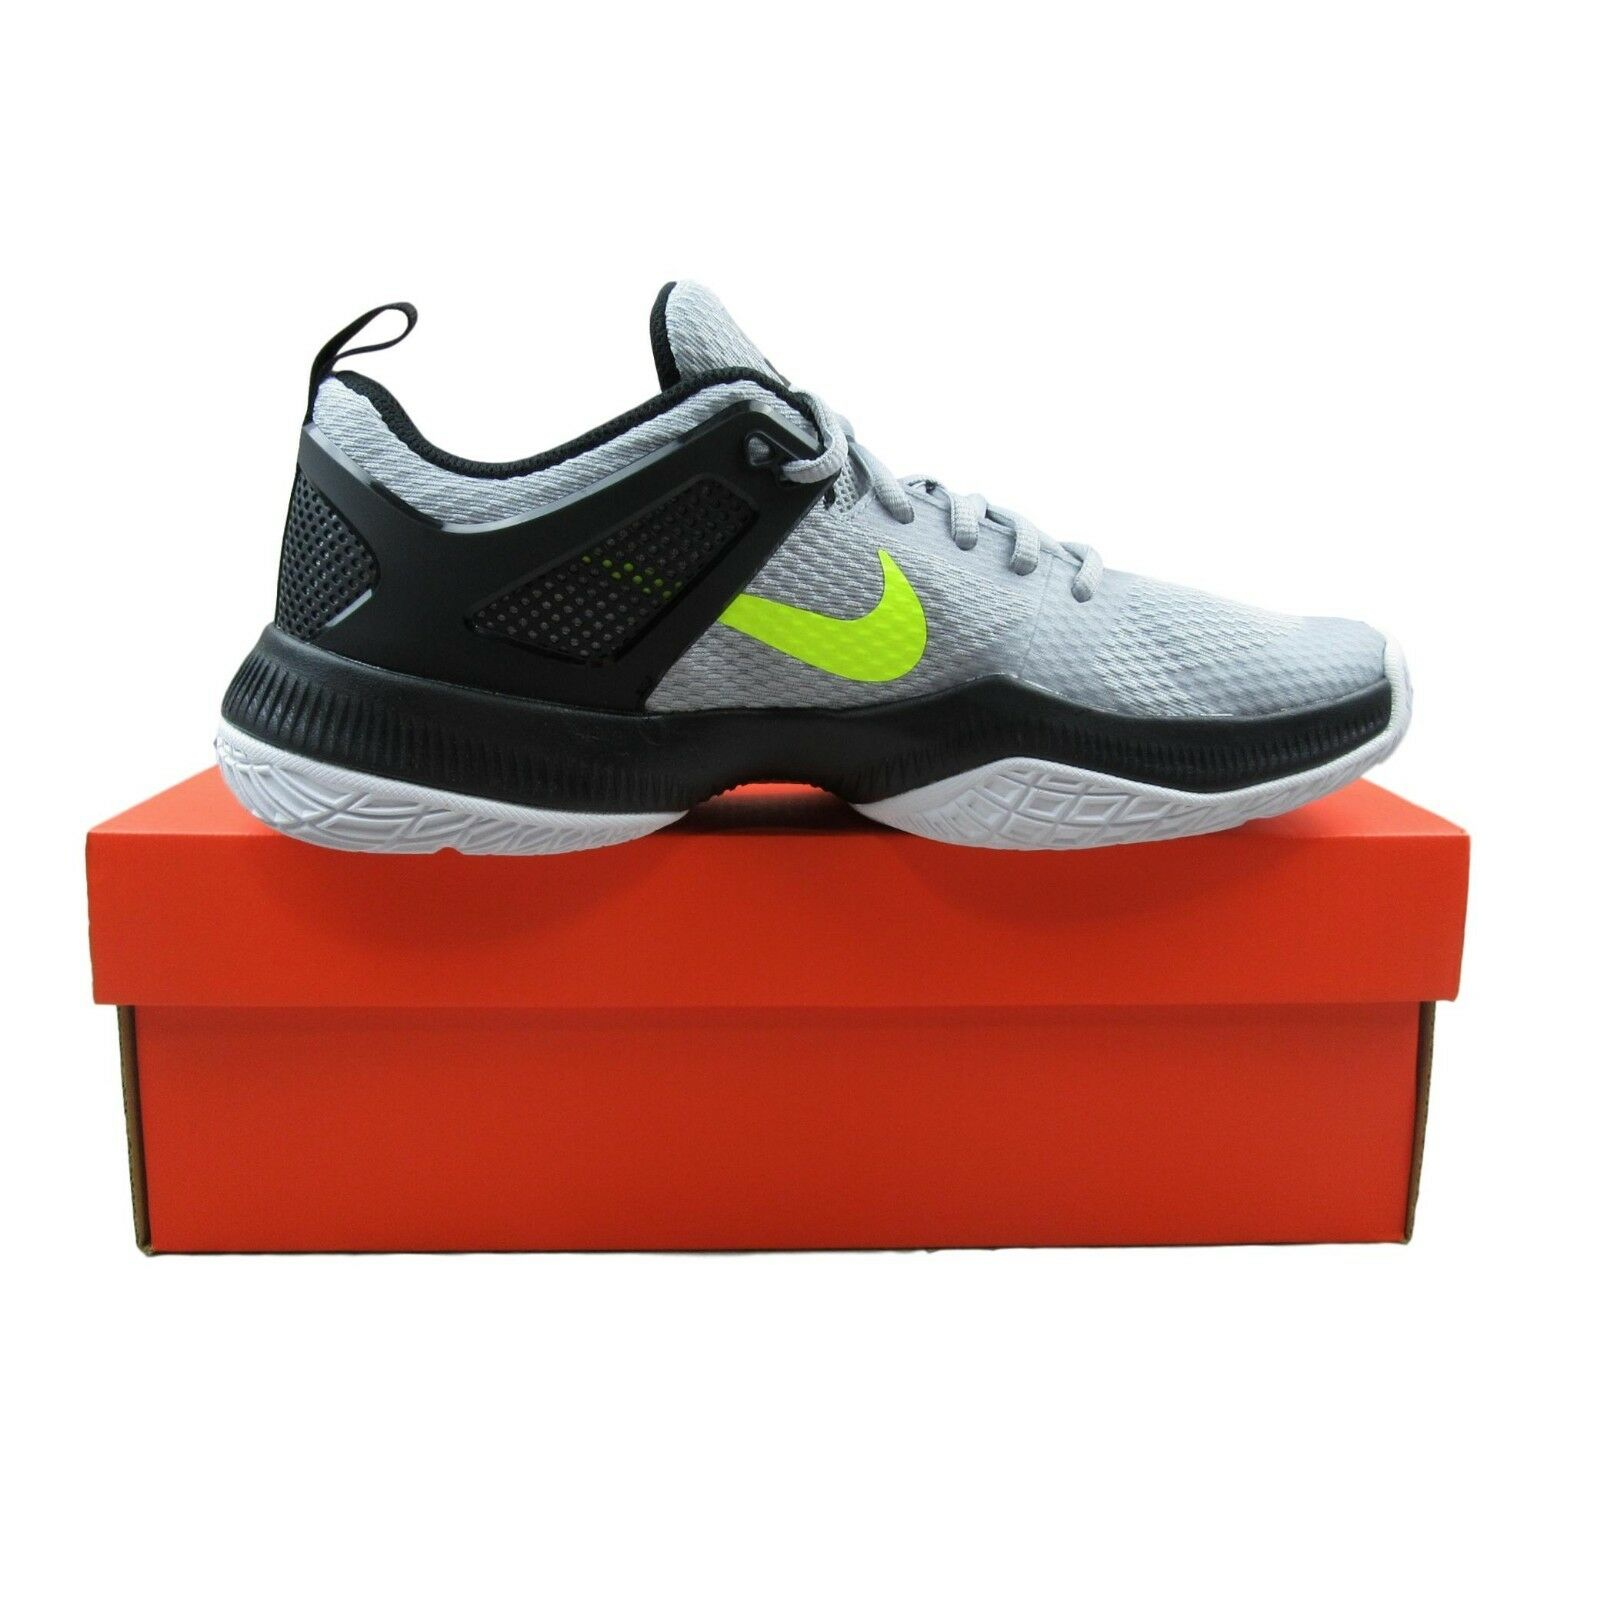 official photos 1ad56 8320a nike-air-zoom-hyperace-womens-volleyball-shoes-gray-